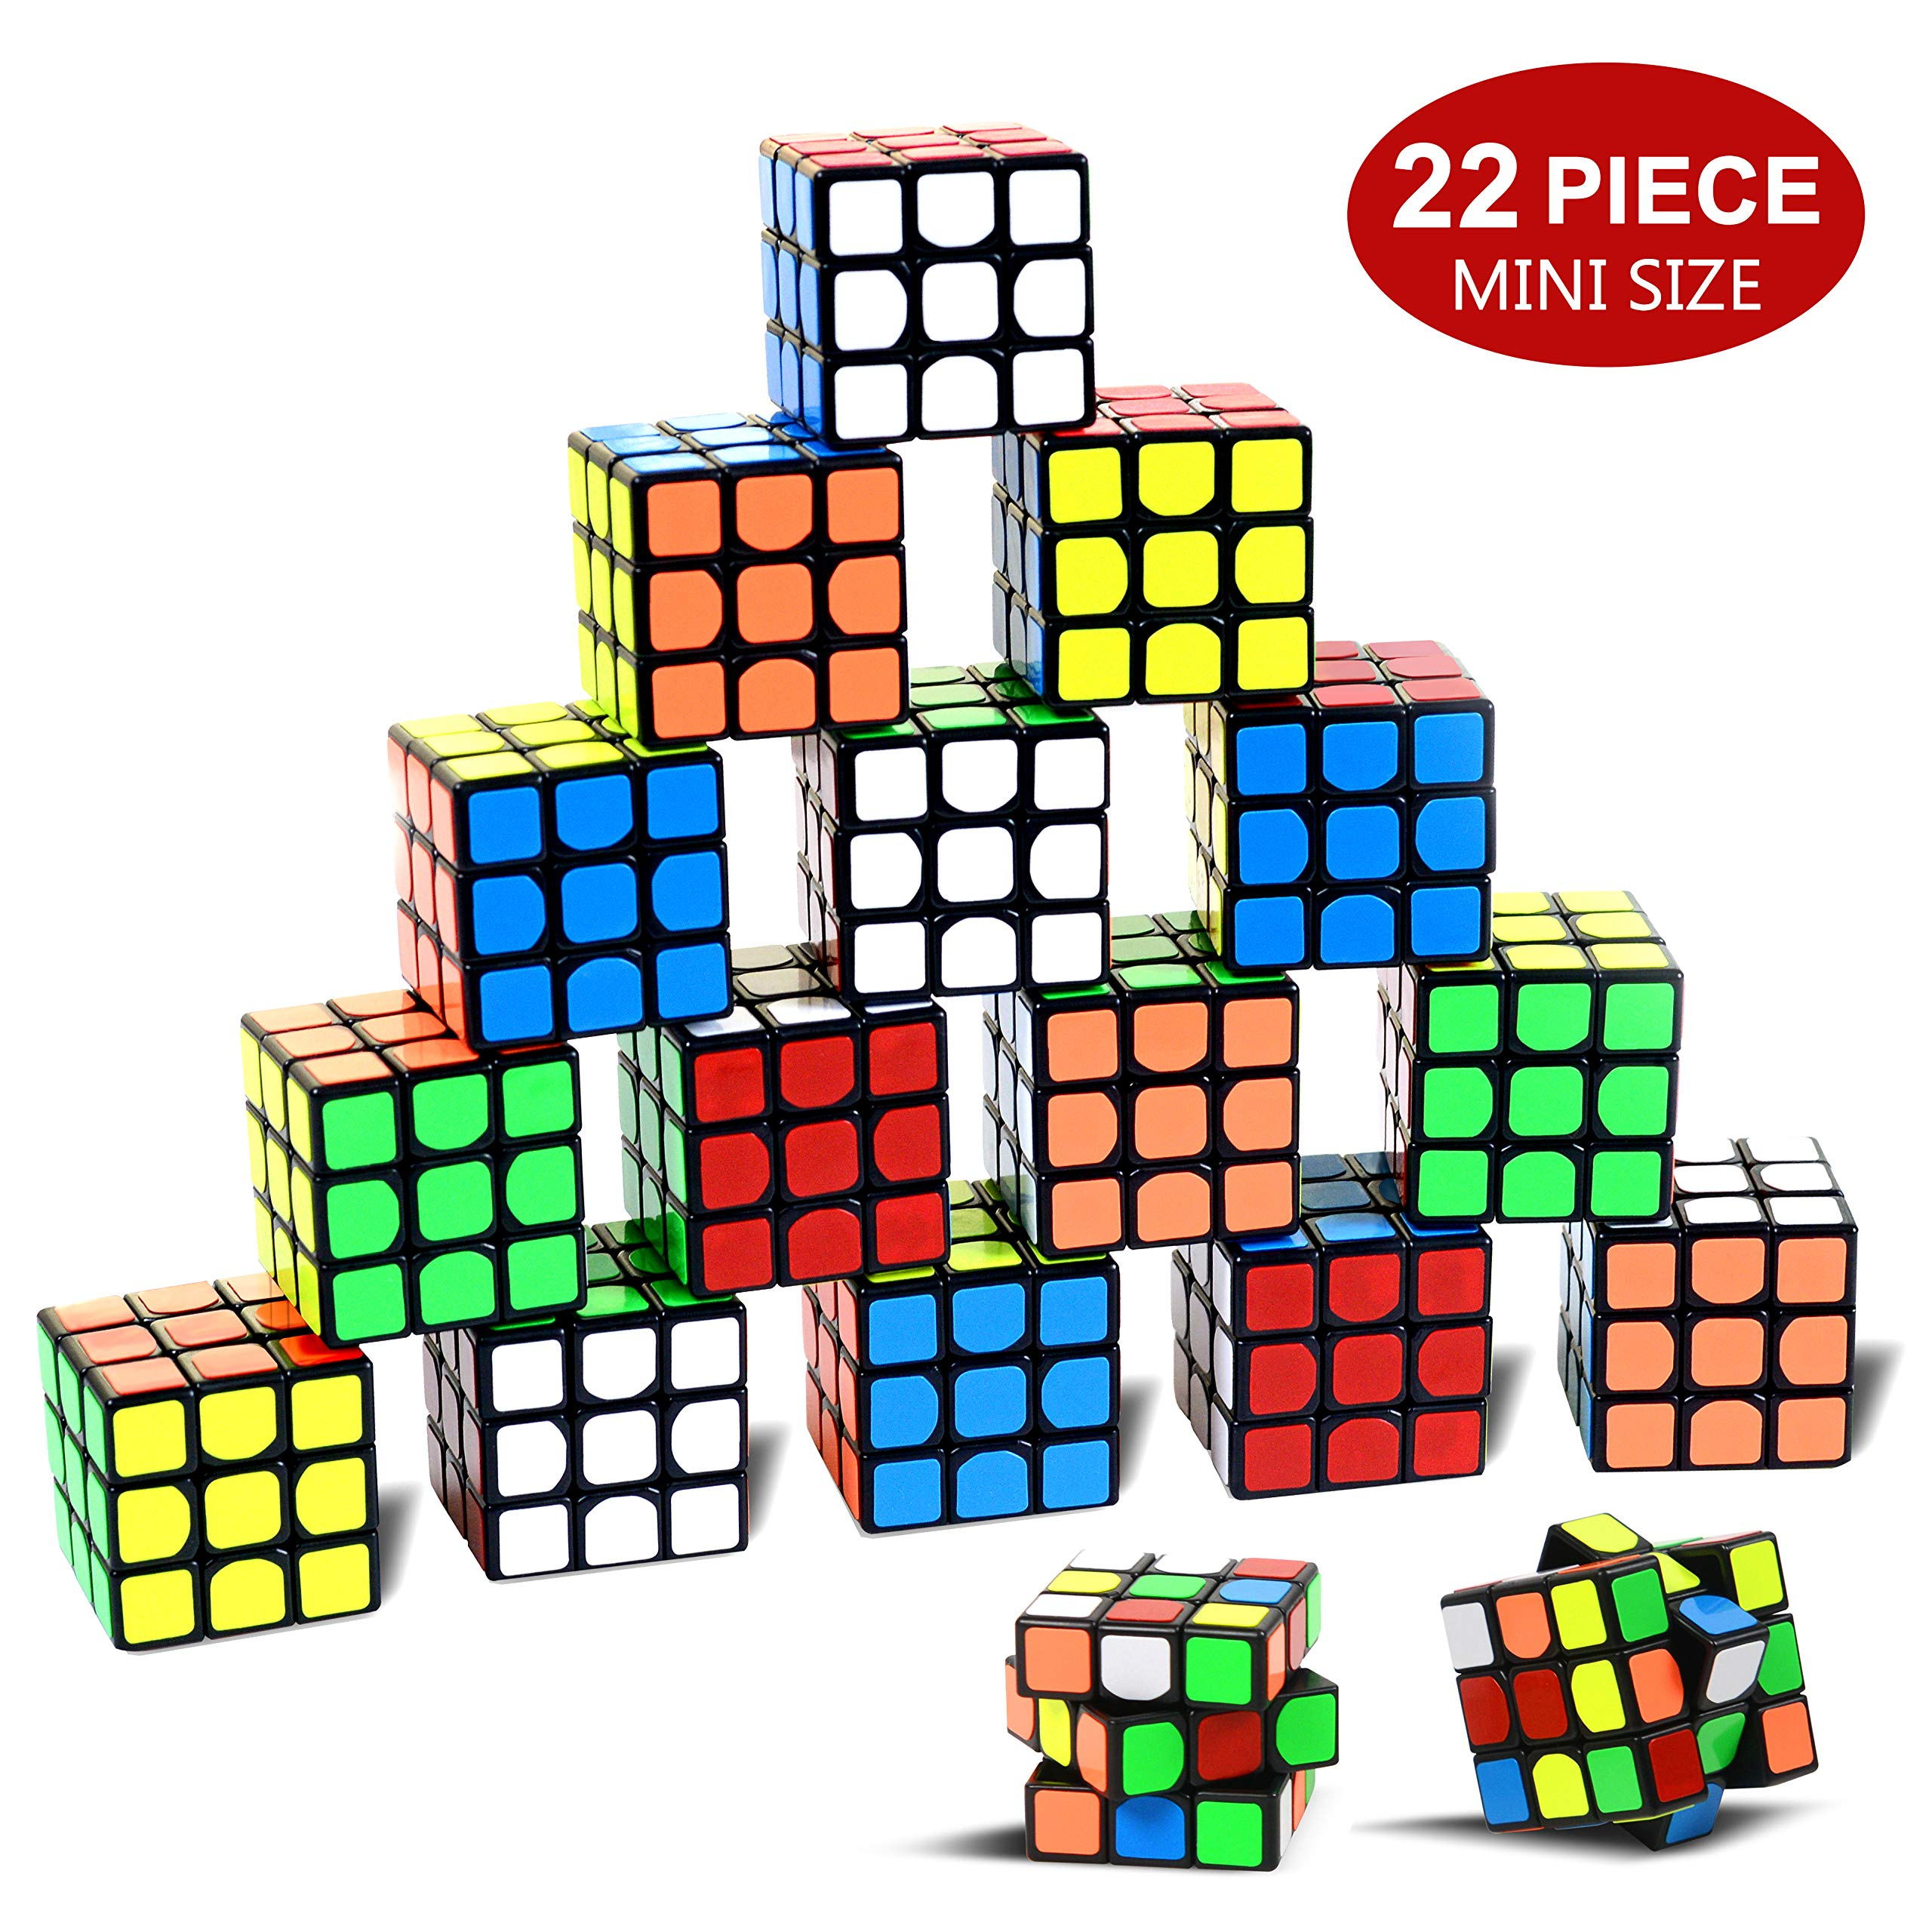 Party Puzzle Toy,22 Pack Mini Cubes Set Party Favors Cube Puzzle,Original Color 1.18 Inch Puzzle Magic Cube Eco-Friendly Safe Material with Vivid Colors,Party Puzzle Game for Boys Girls Kids Toddlers by Original Color